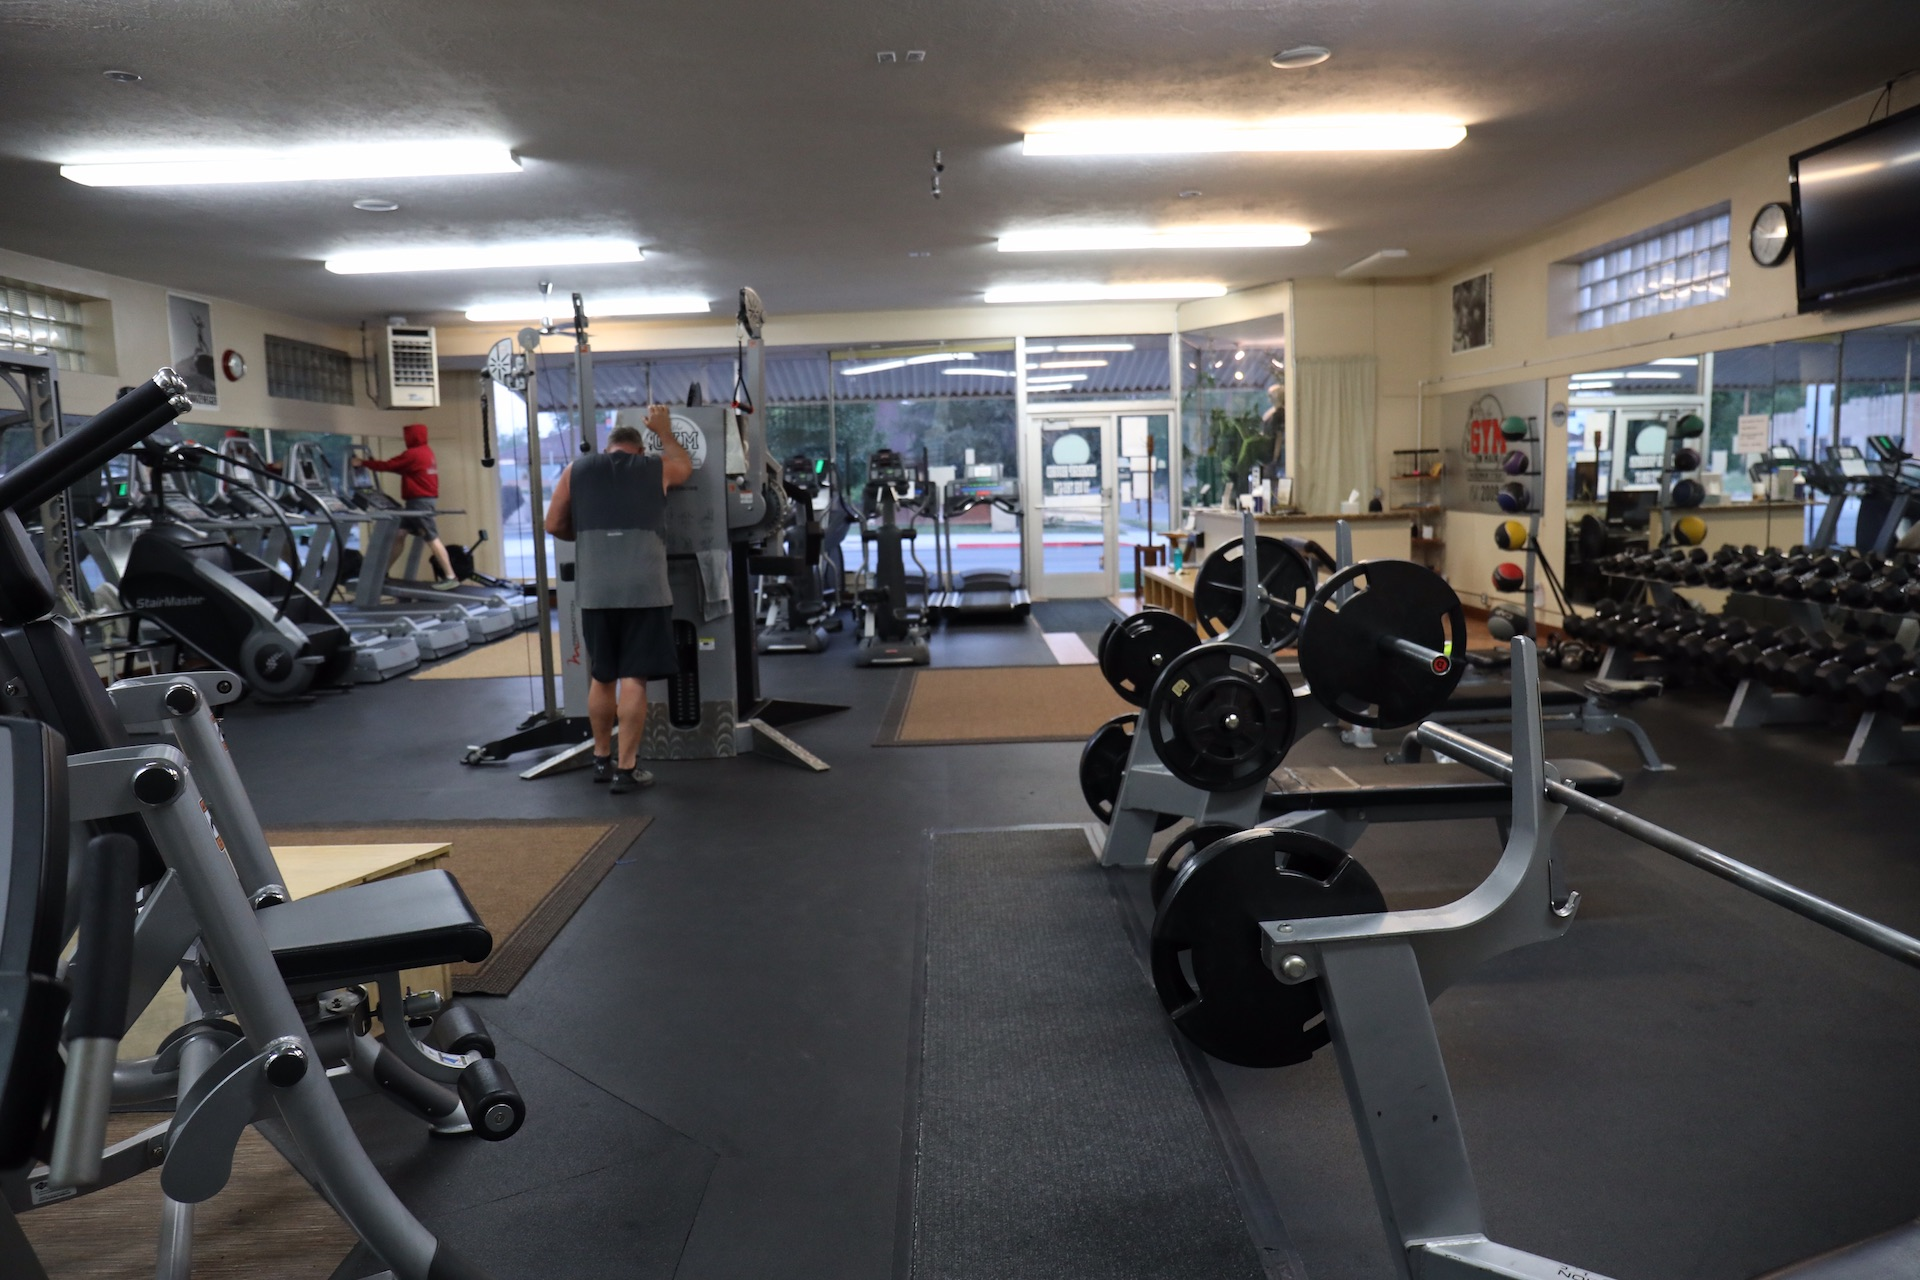 gym on main front room equipment